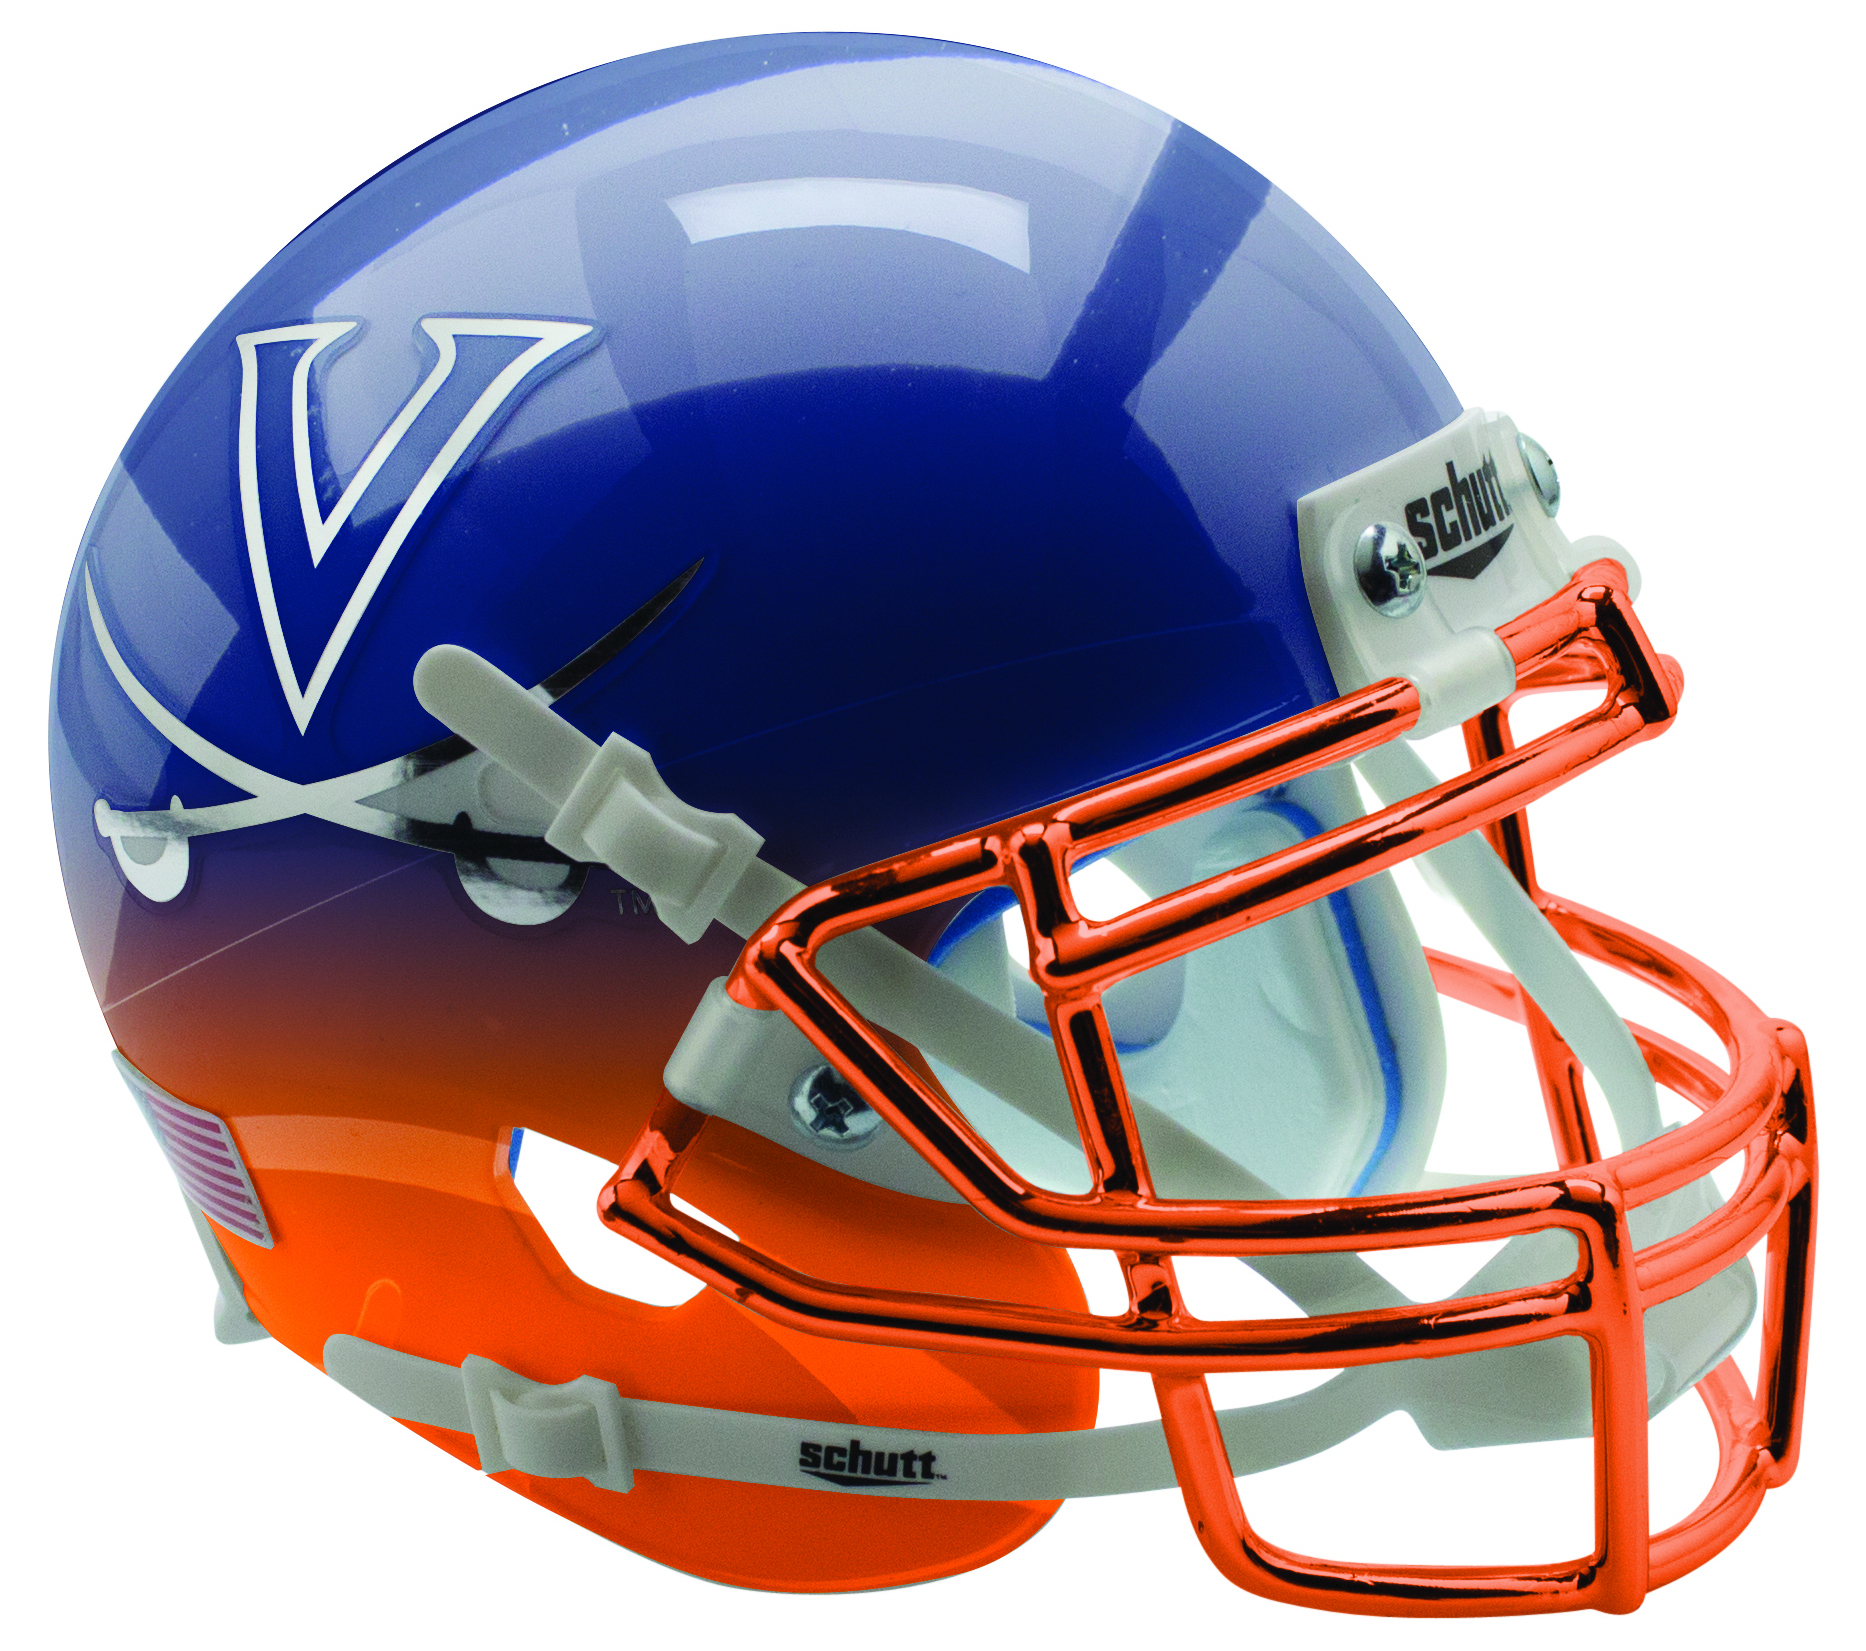 Virginia Cavaliers Mini XP Authentic Helmet Schutt B Navy Orange Featherhead with Chrome Mask B PSM-Powers Sports Memorabilia